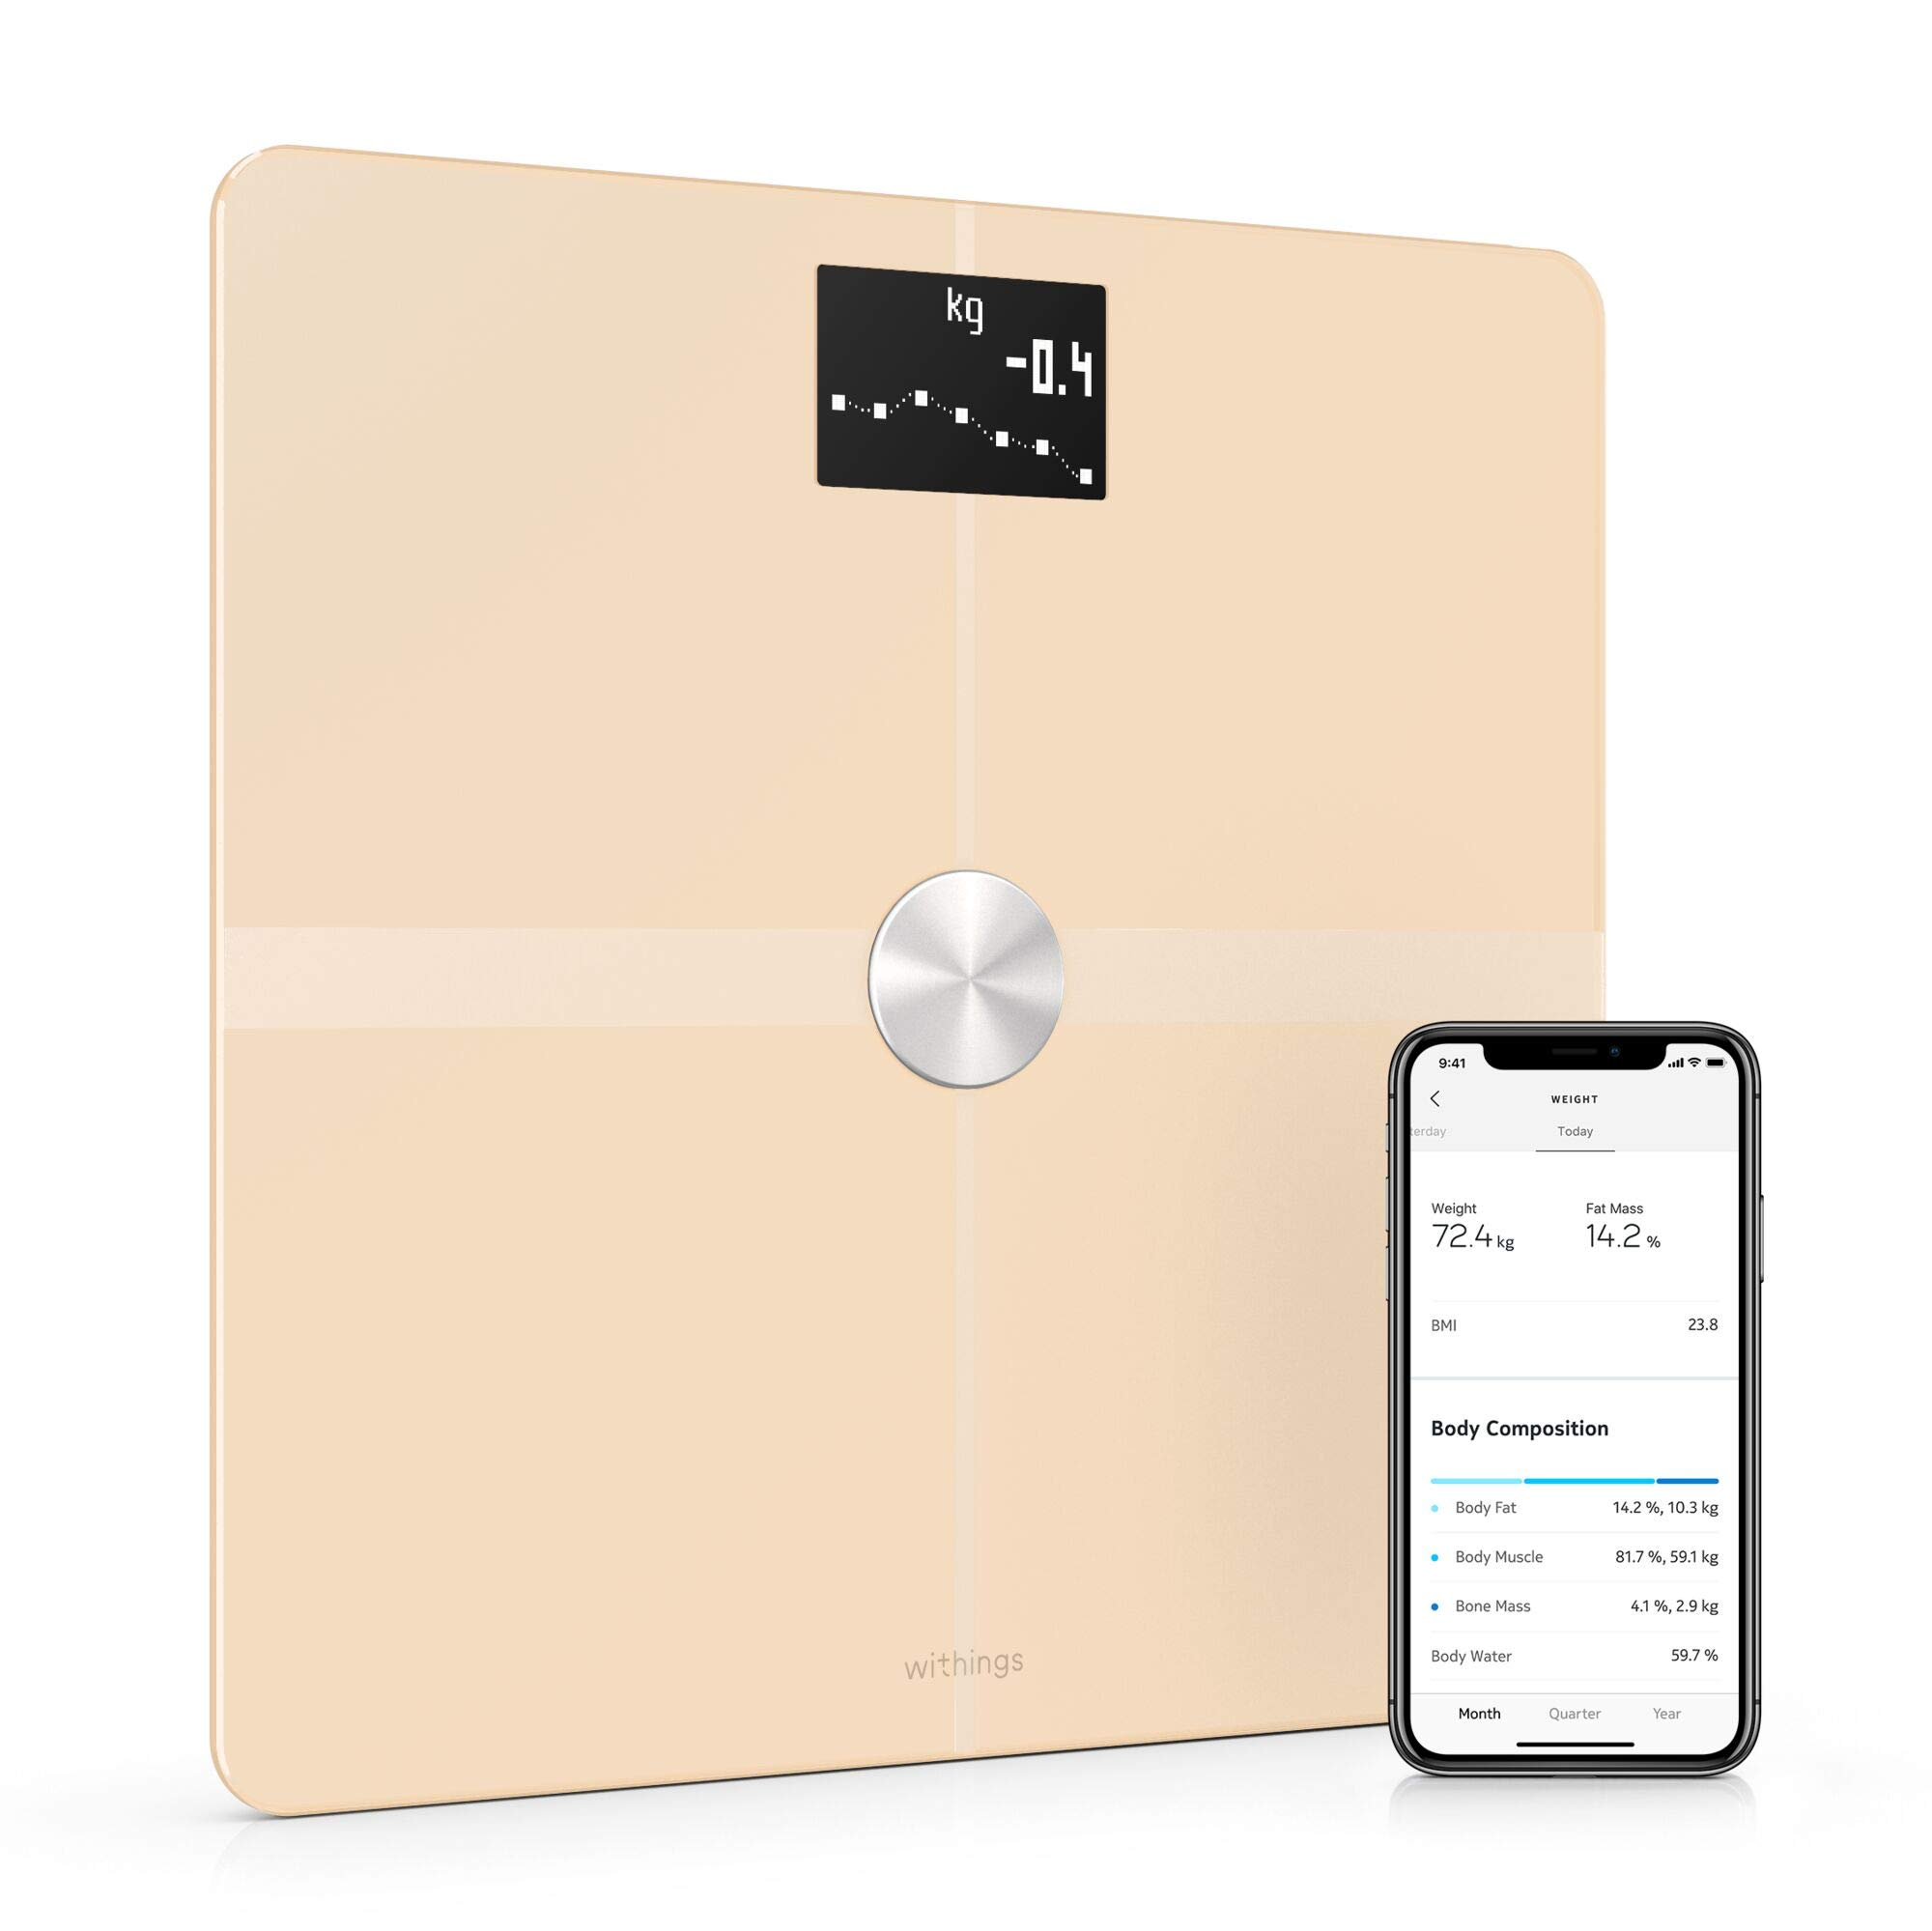 Withings Body+ - Smart Body Composition Wi-Fi Digital Scale with Smartphone app by Withings